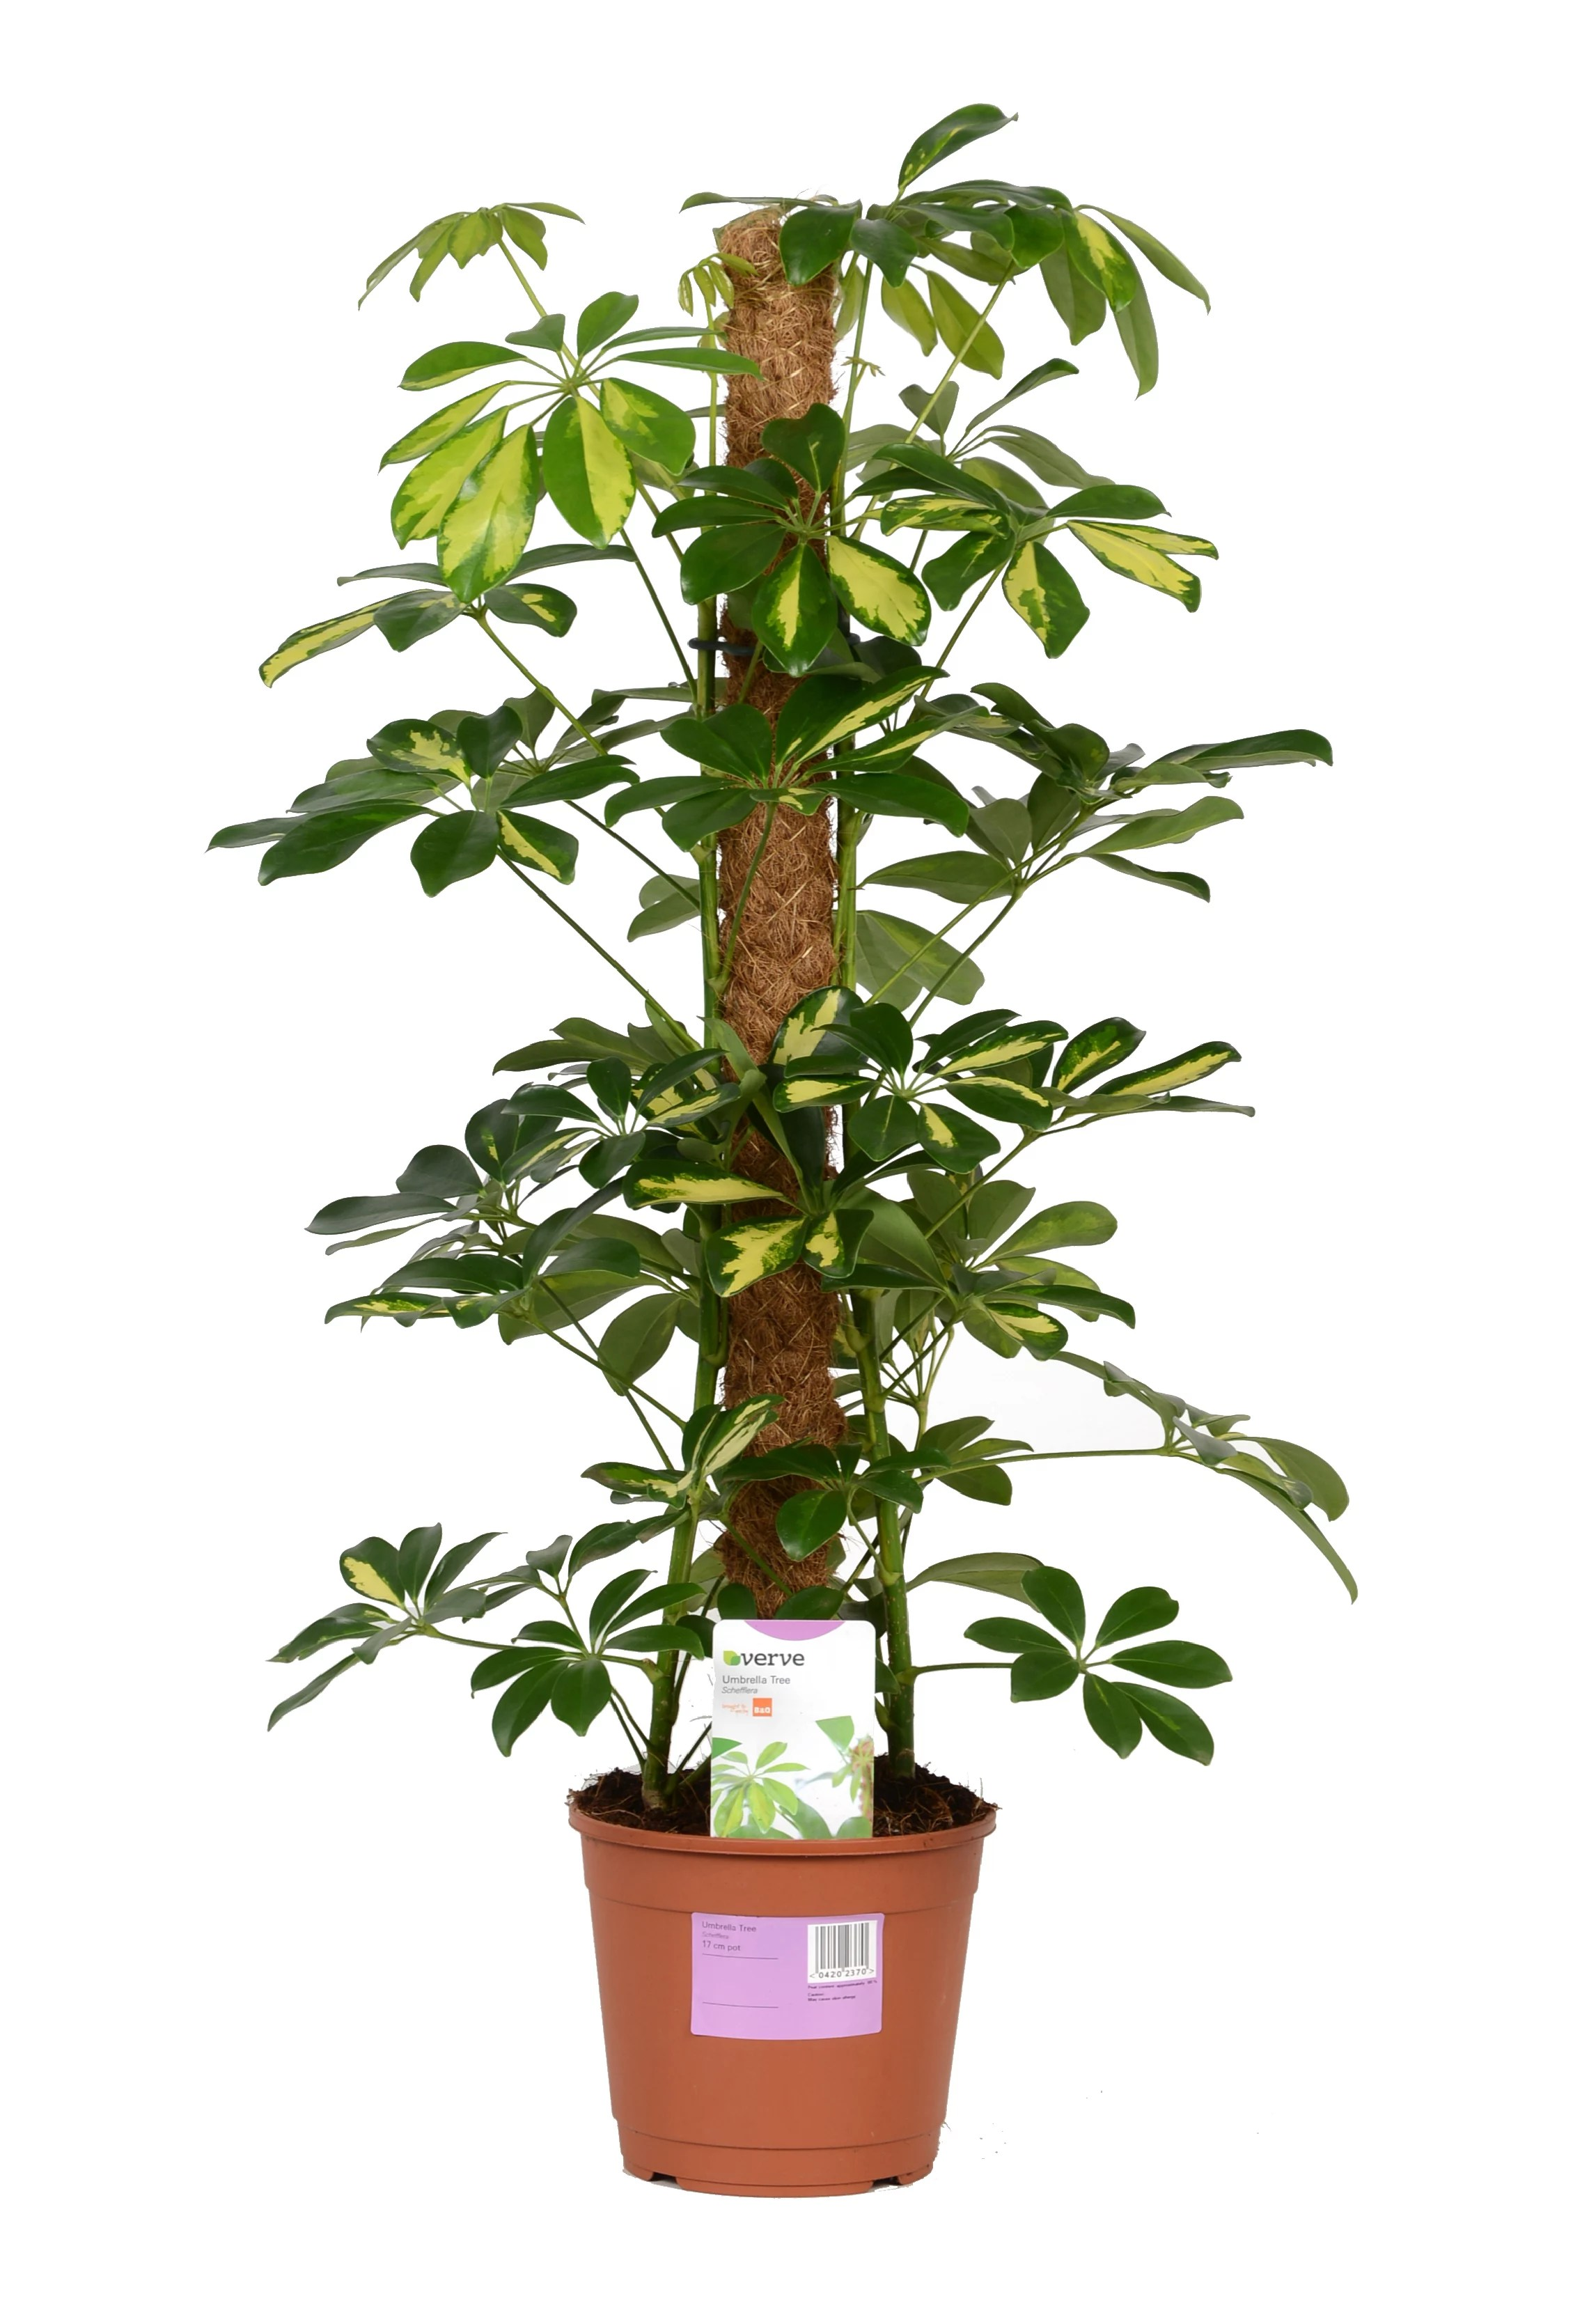 Verve Umbrella Tree In Plastic Pot Departments DIY At BampQ